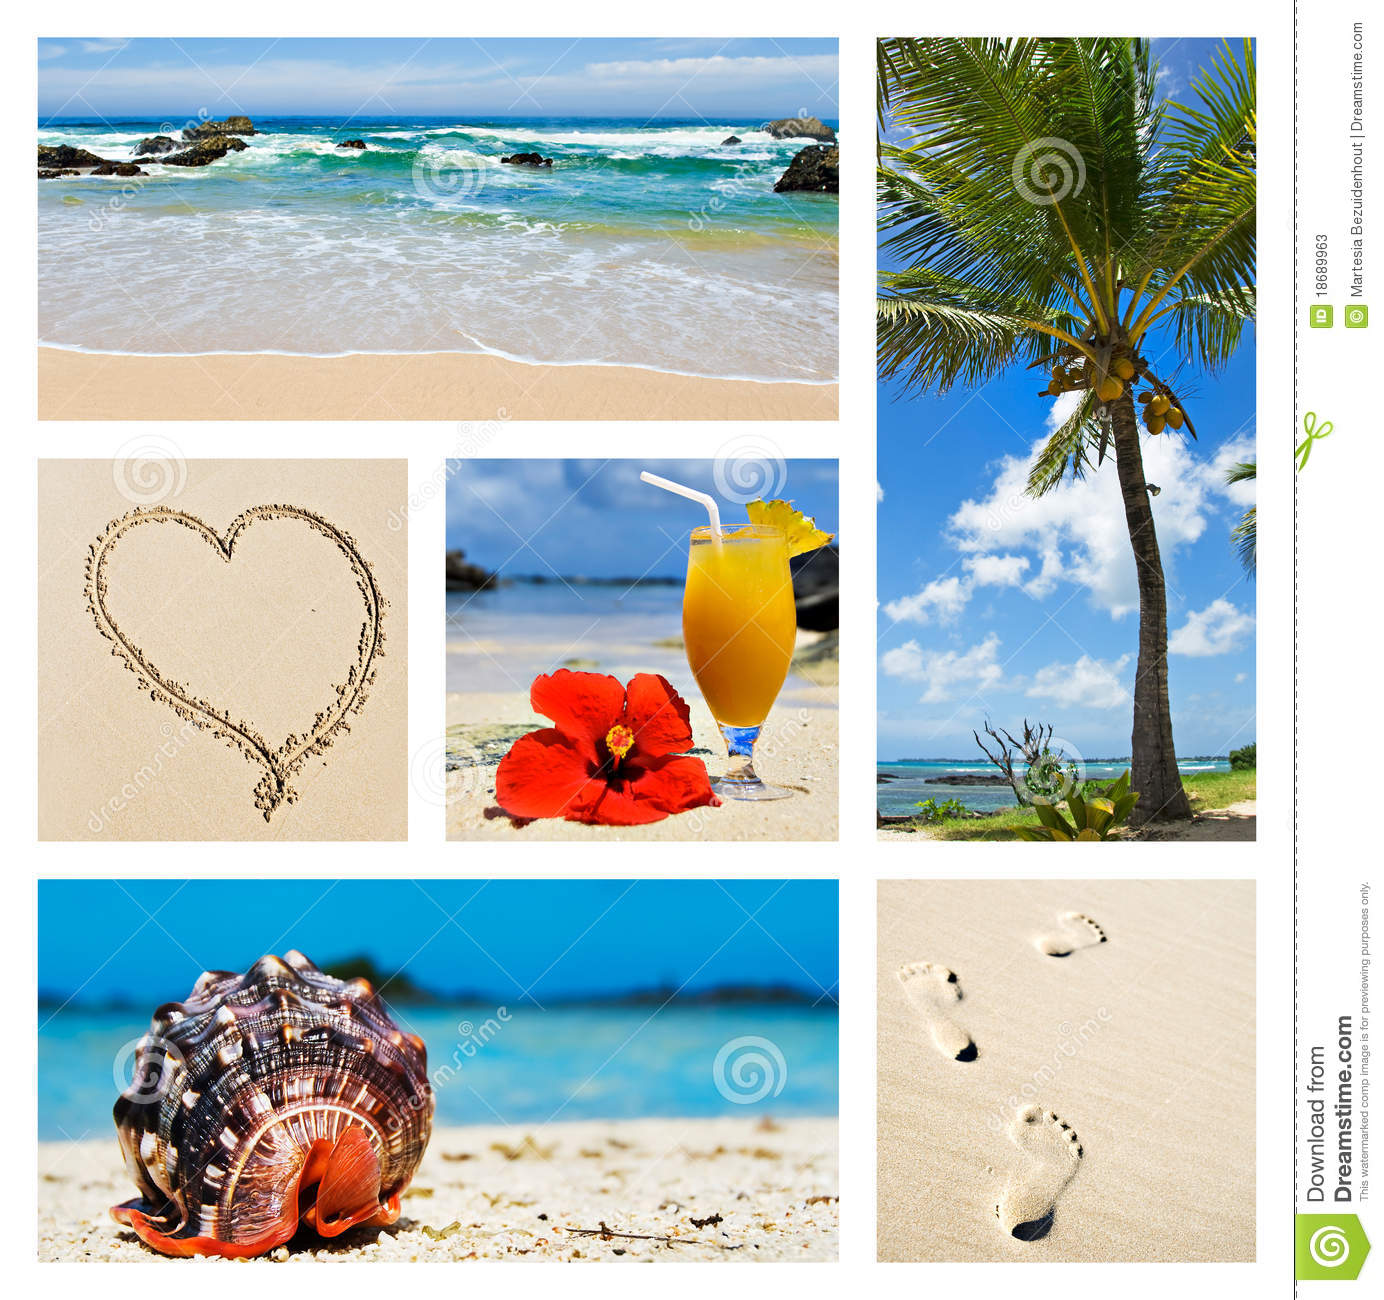 Island Beach Scenes: Collage Of Tropical Island Scenes Stock Image